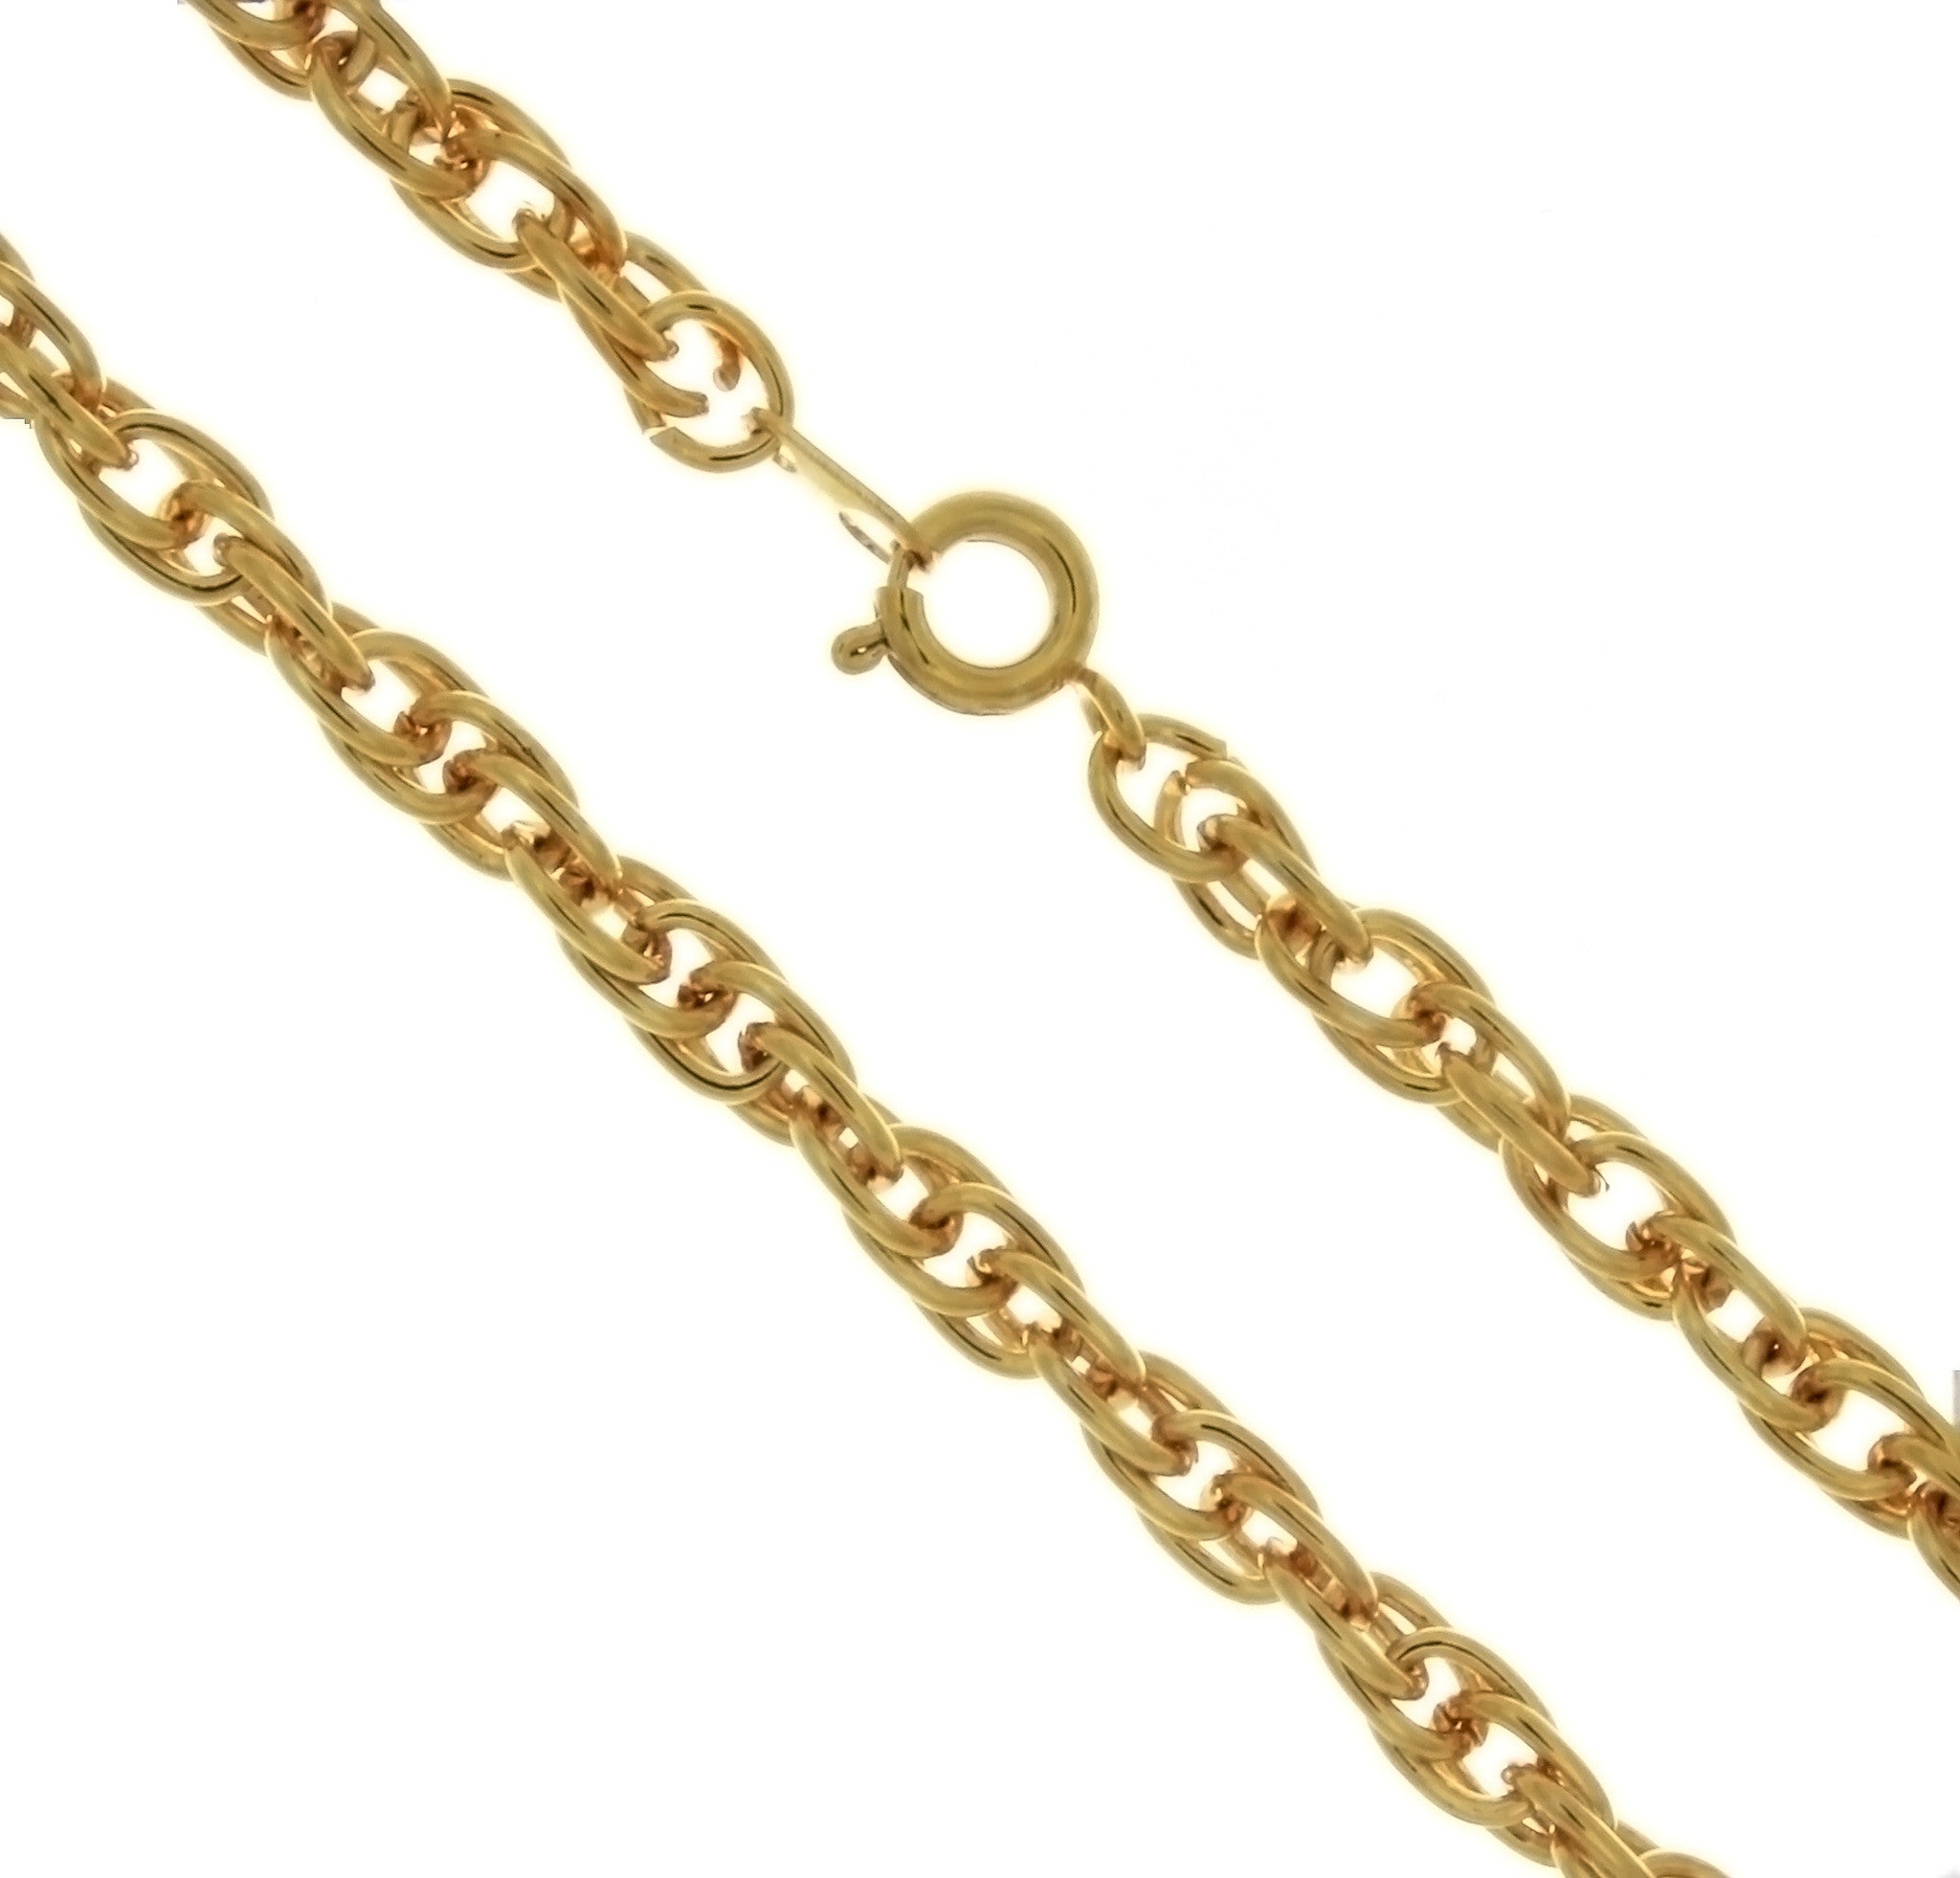 CHAIN NECKLACE ROPE GOLD 5 MM X 24 IN (DOZ)